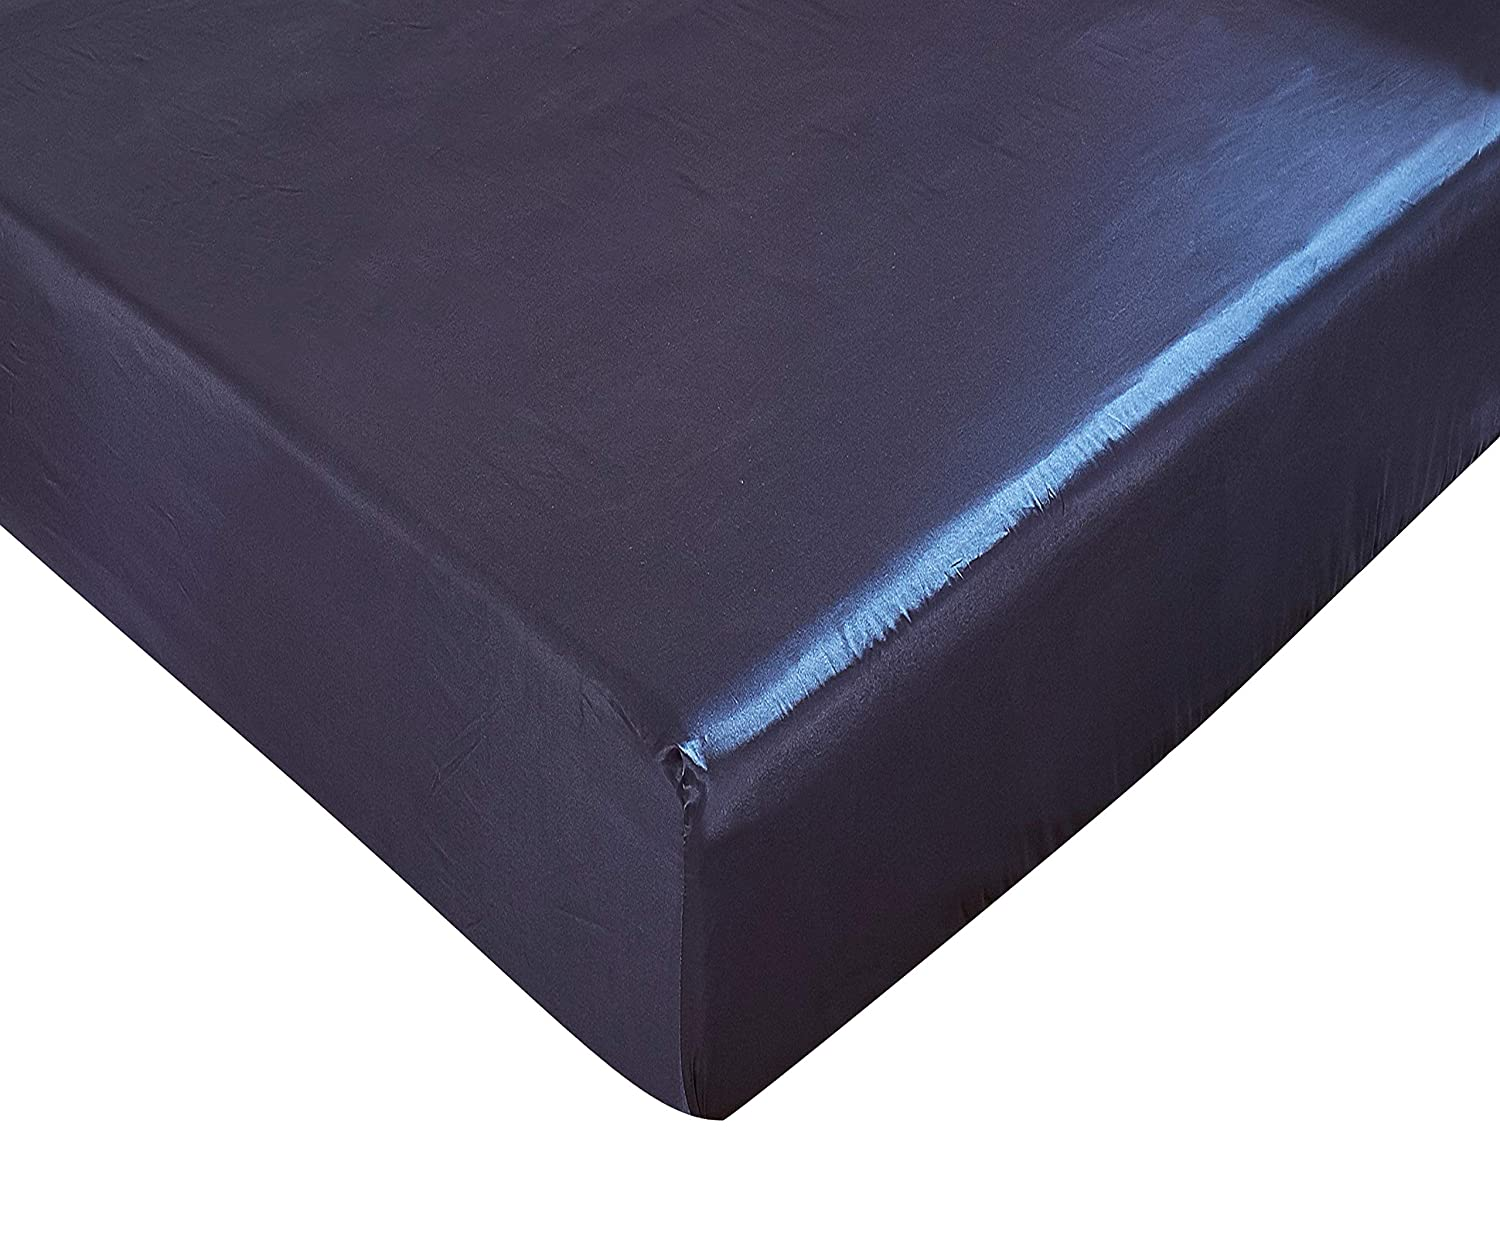 DuShow Fitted Sheet Black Twin-Deep Pocket Satin Silk Fitted Sheet-Breathable Soft and Comfortable-Wrinkle Fade Stain and Abrasion Resistant